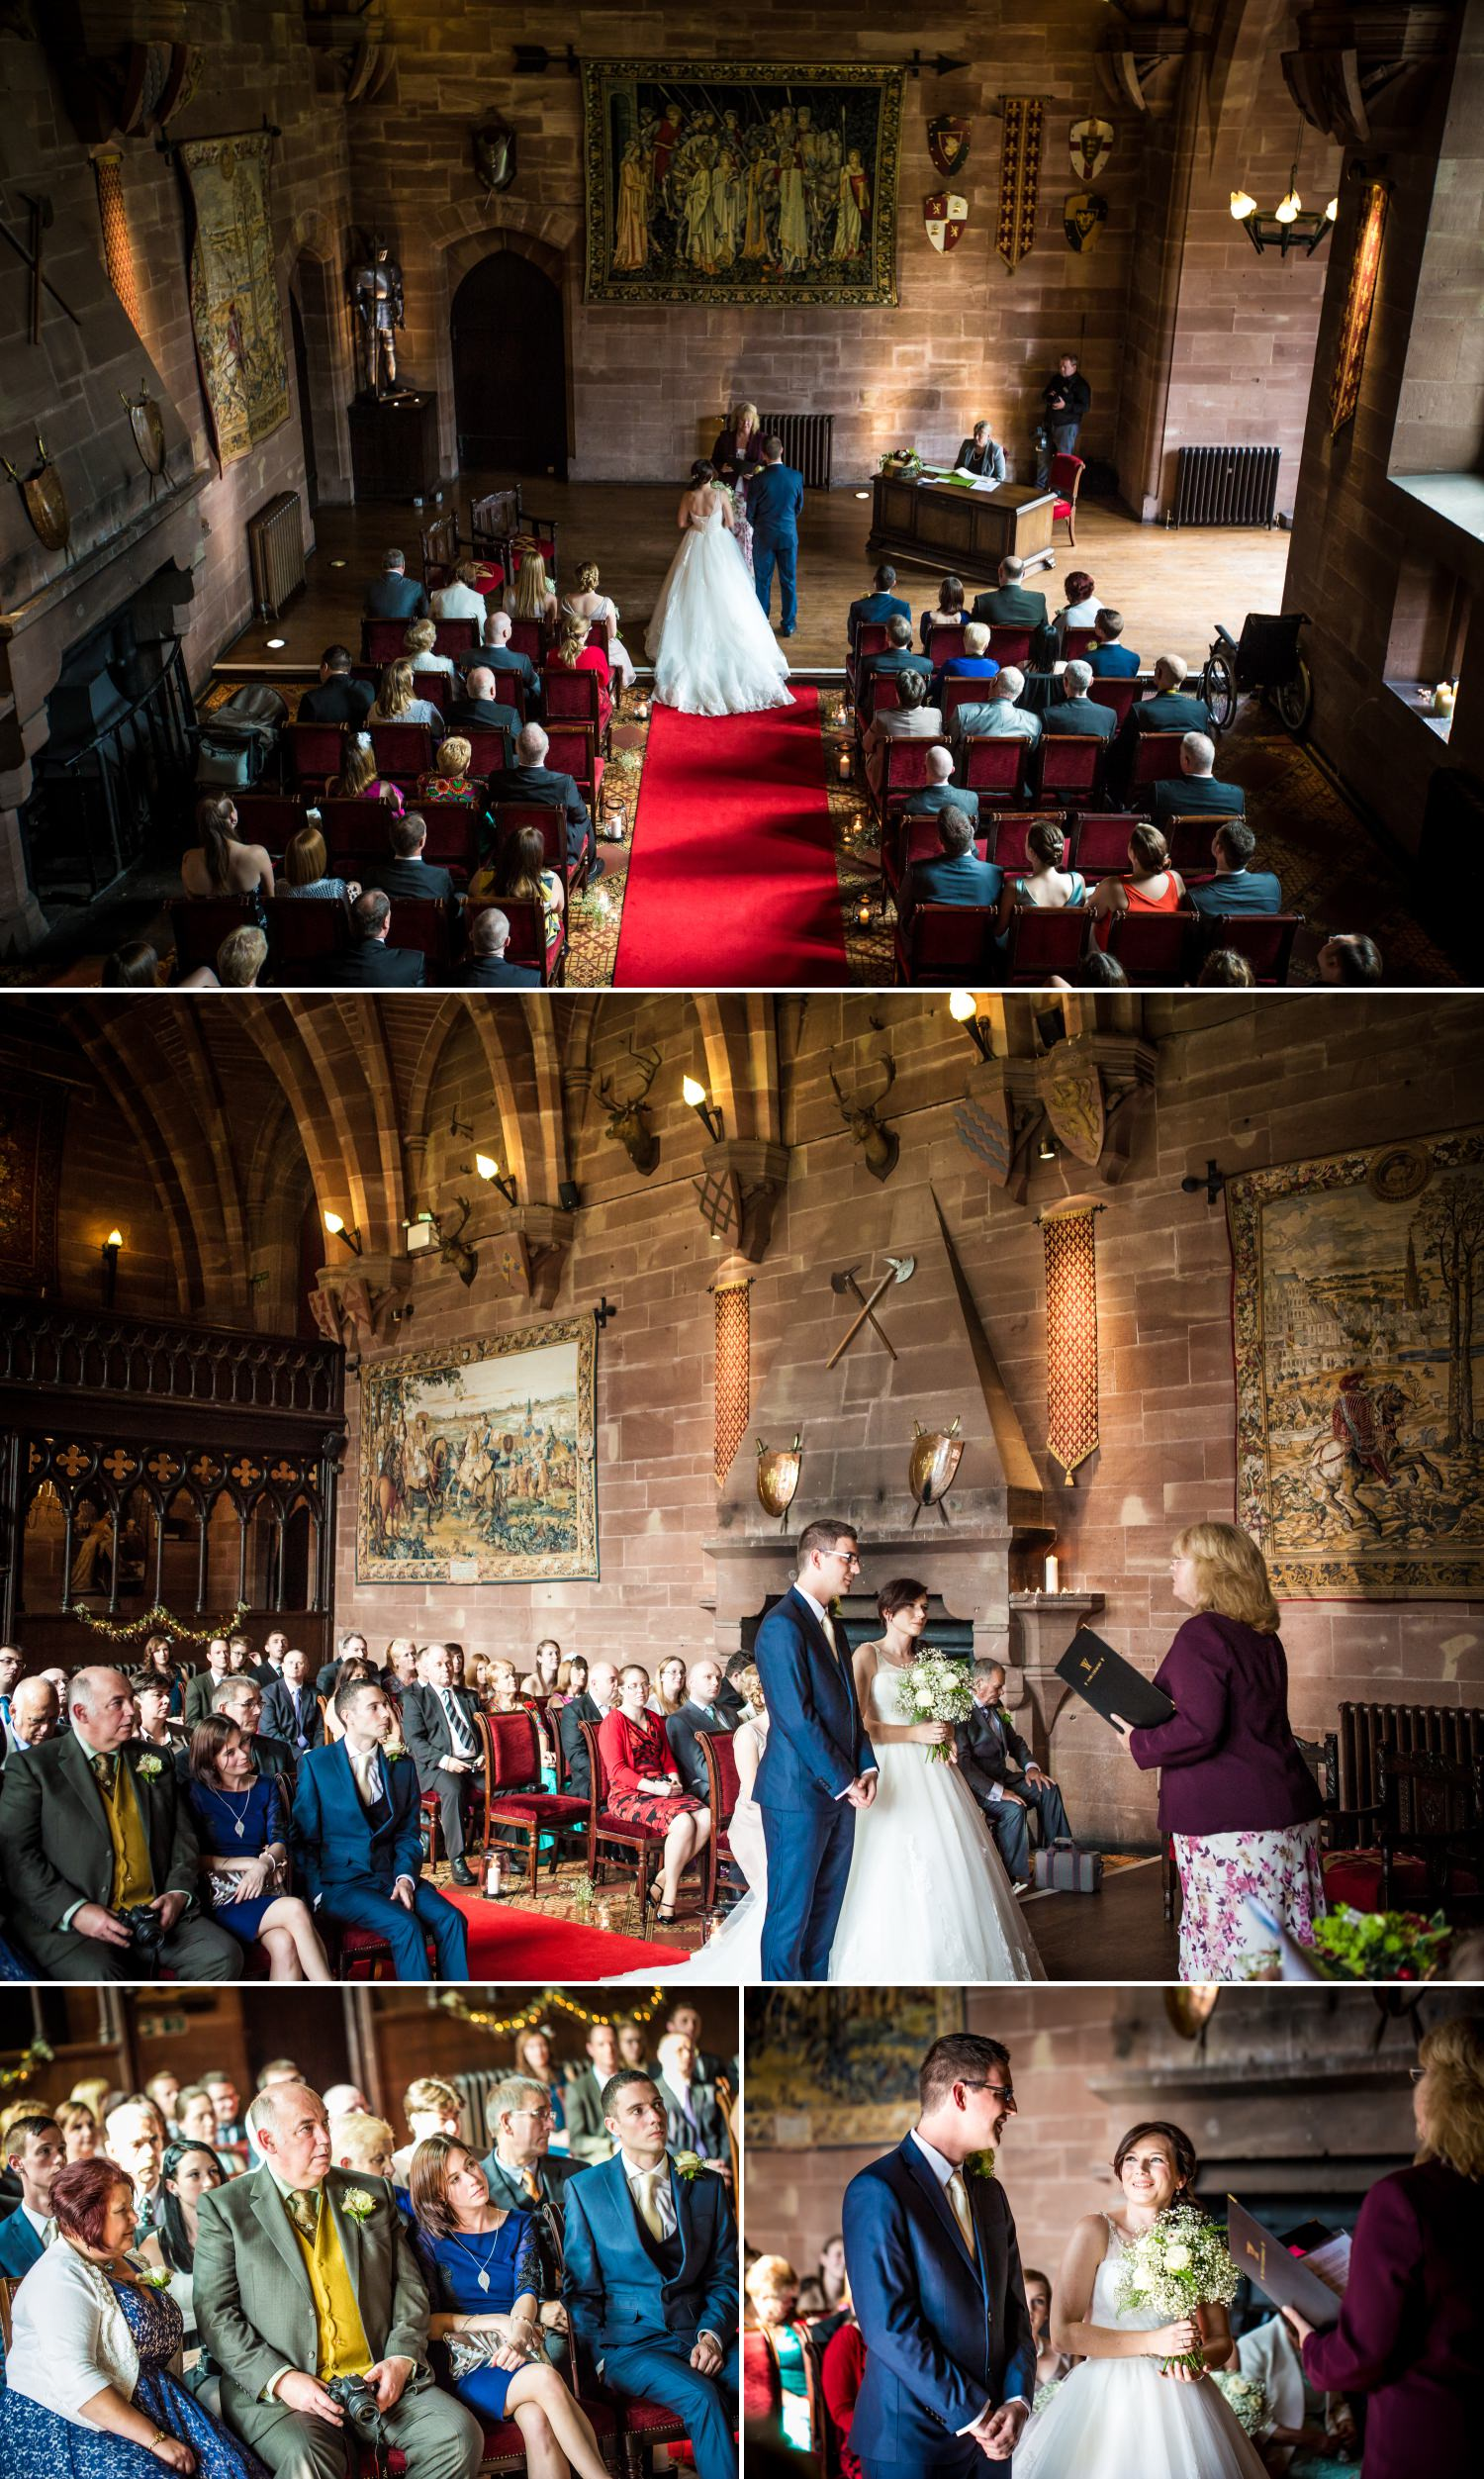 wedding photographs at Peckforton Castle, chester of the wedding ceremony